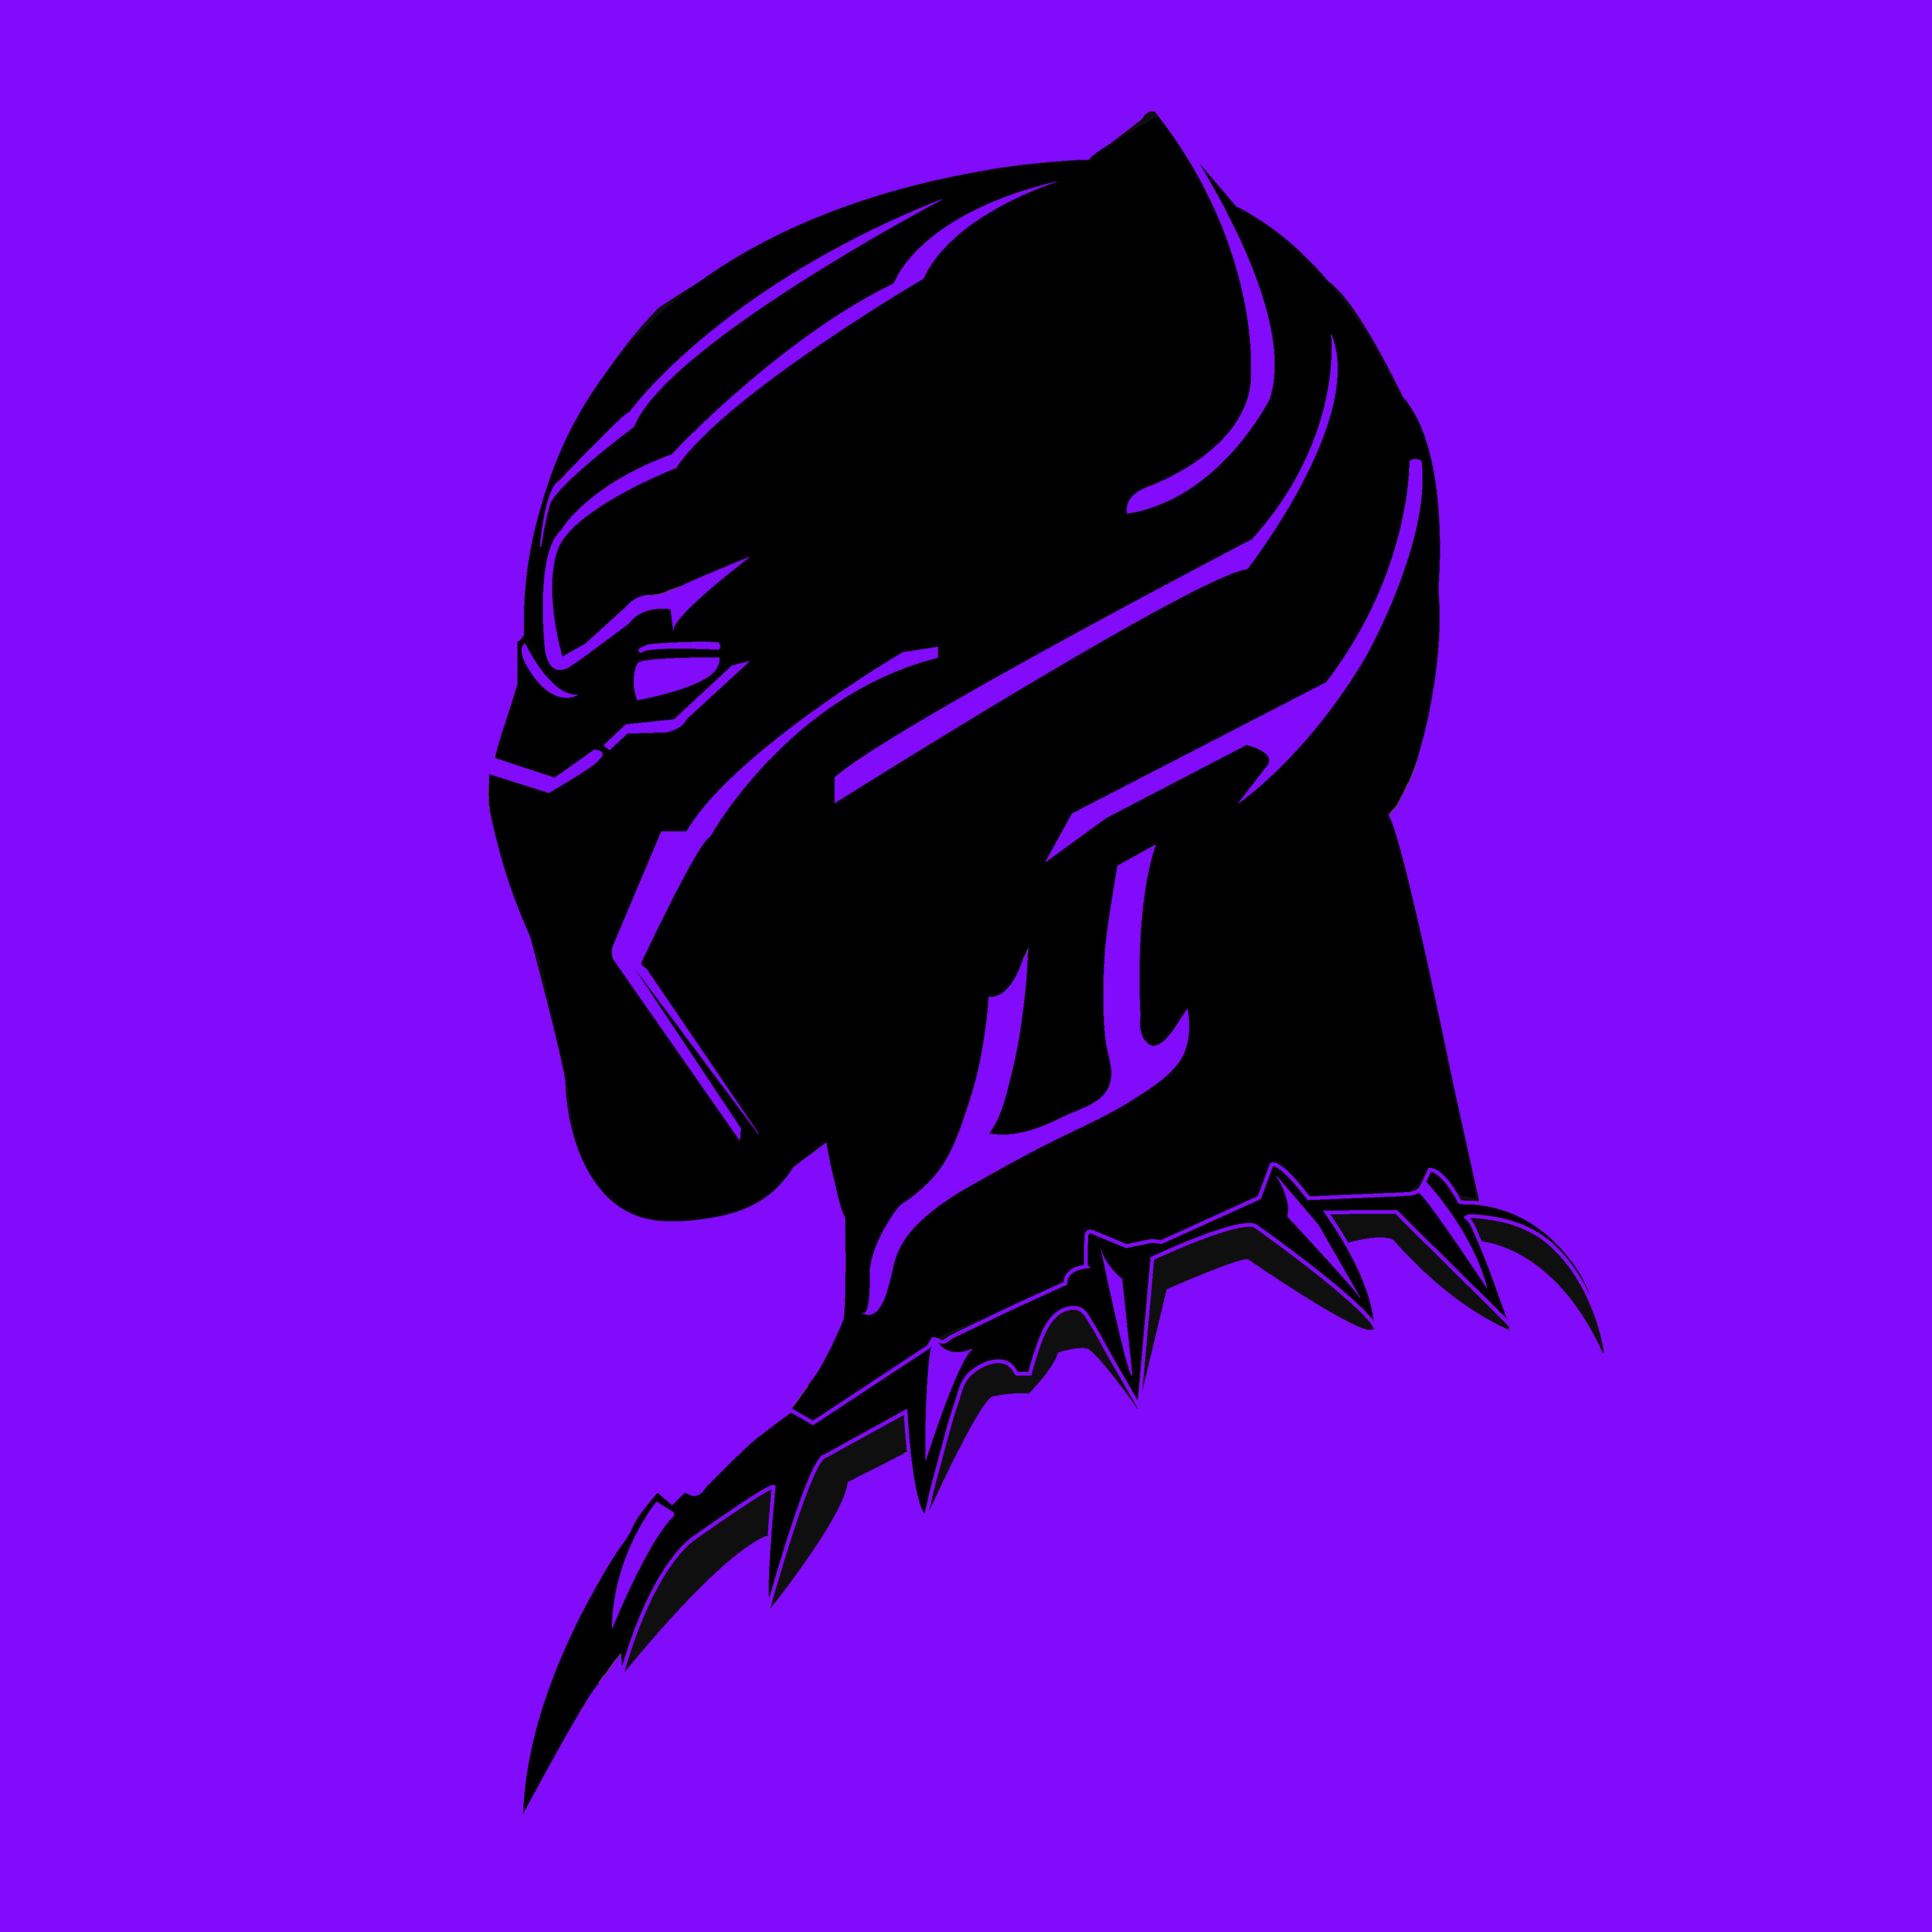 1366x768 Black Panther Illustration 1366x768 Resolution HD